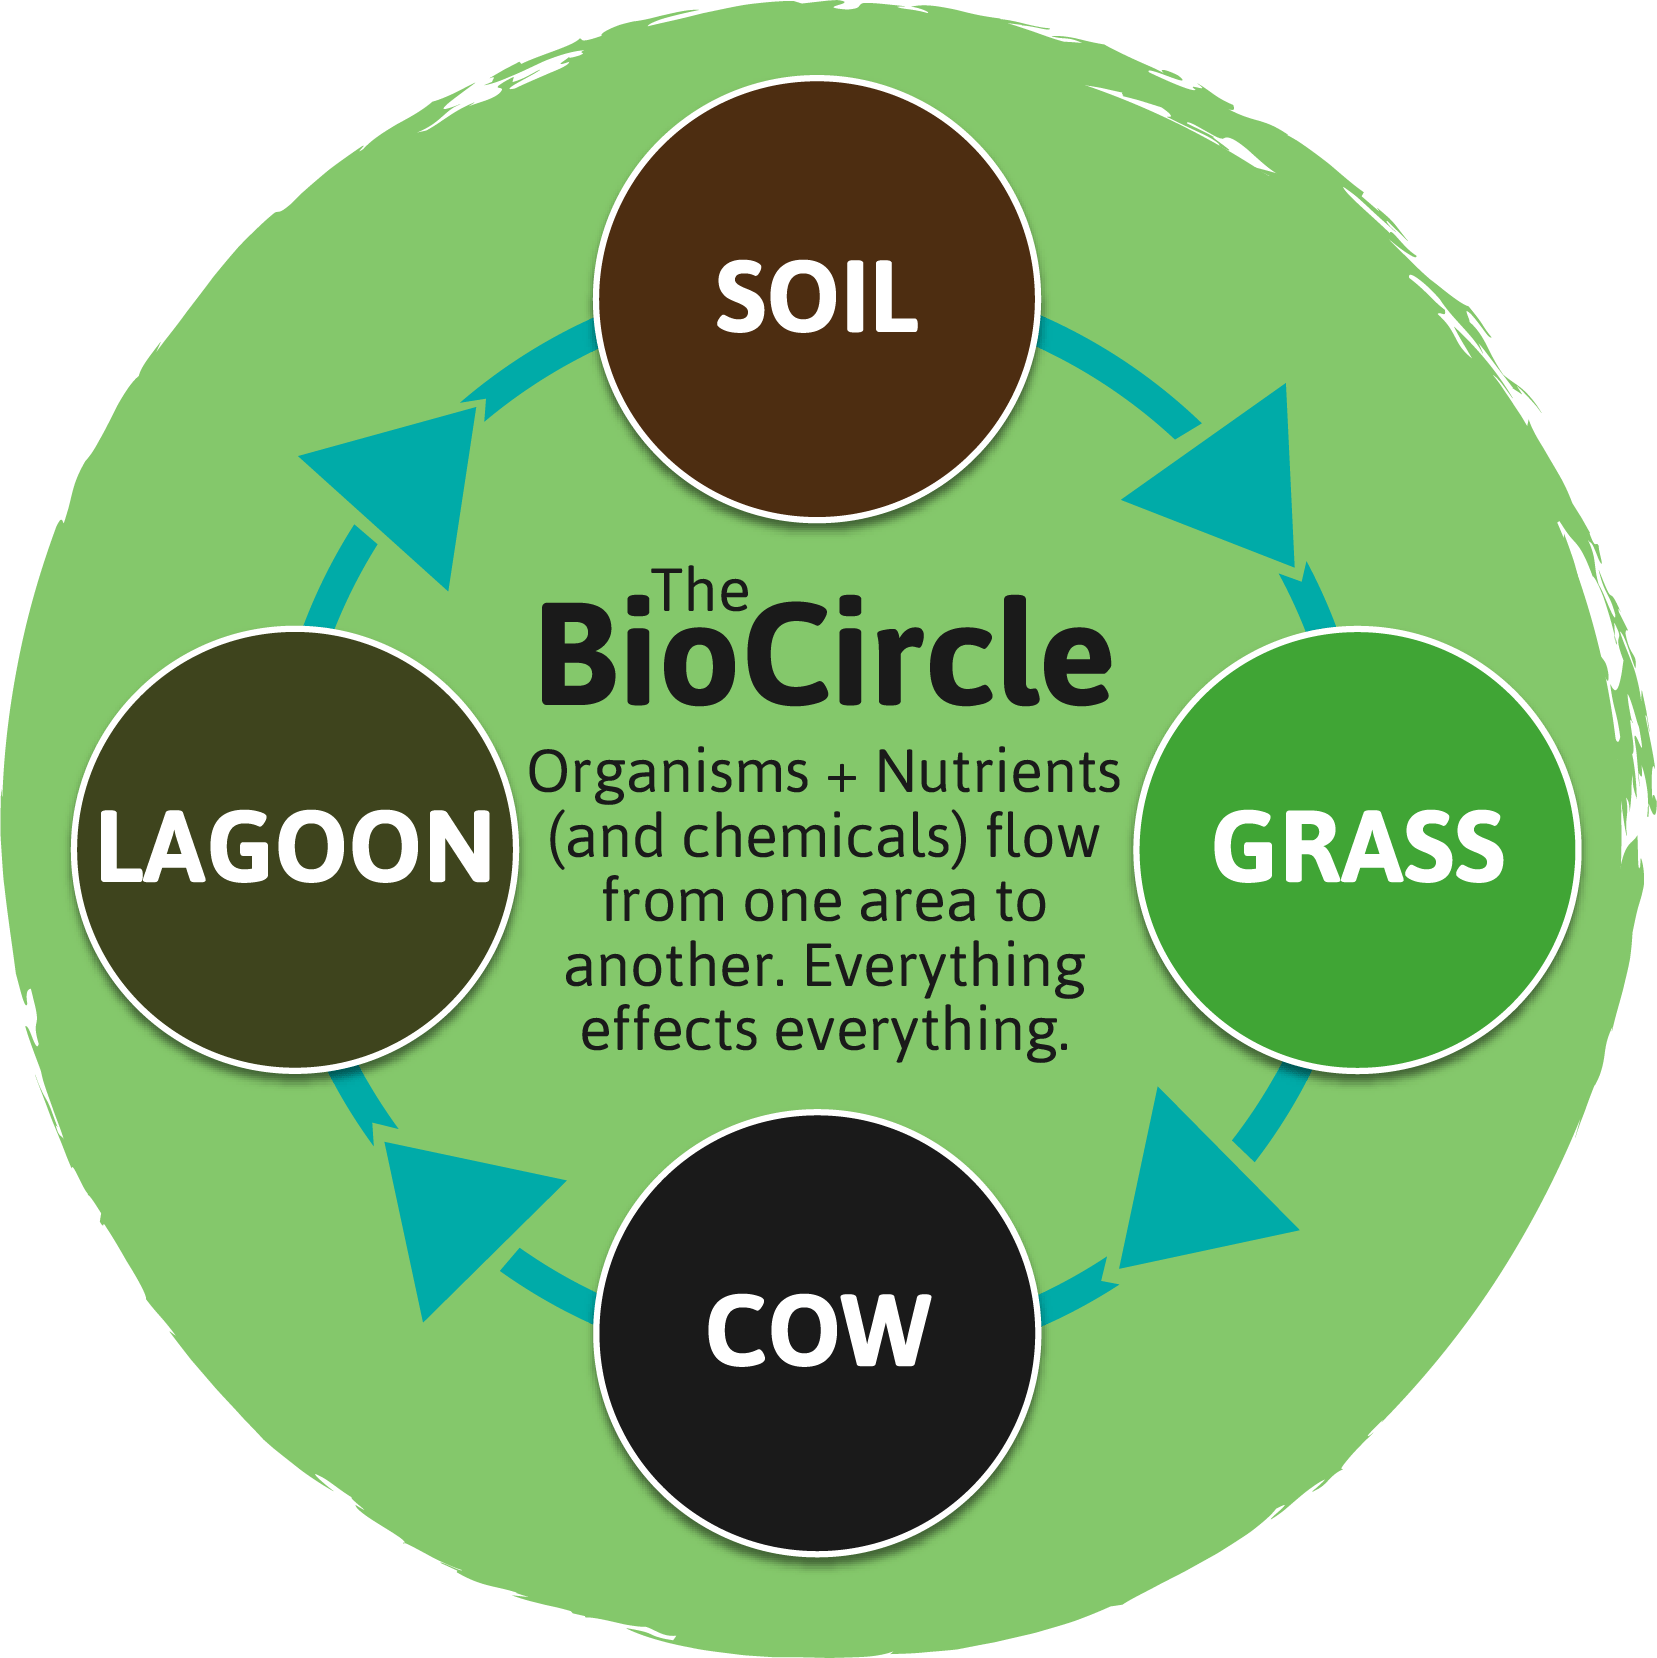 http://www.envirosystems.co.uk/wp-content/uploads/2017/02/biocircle-1.png